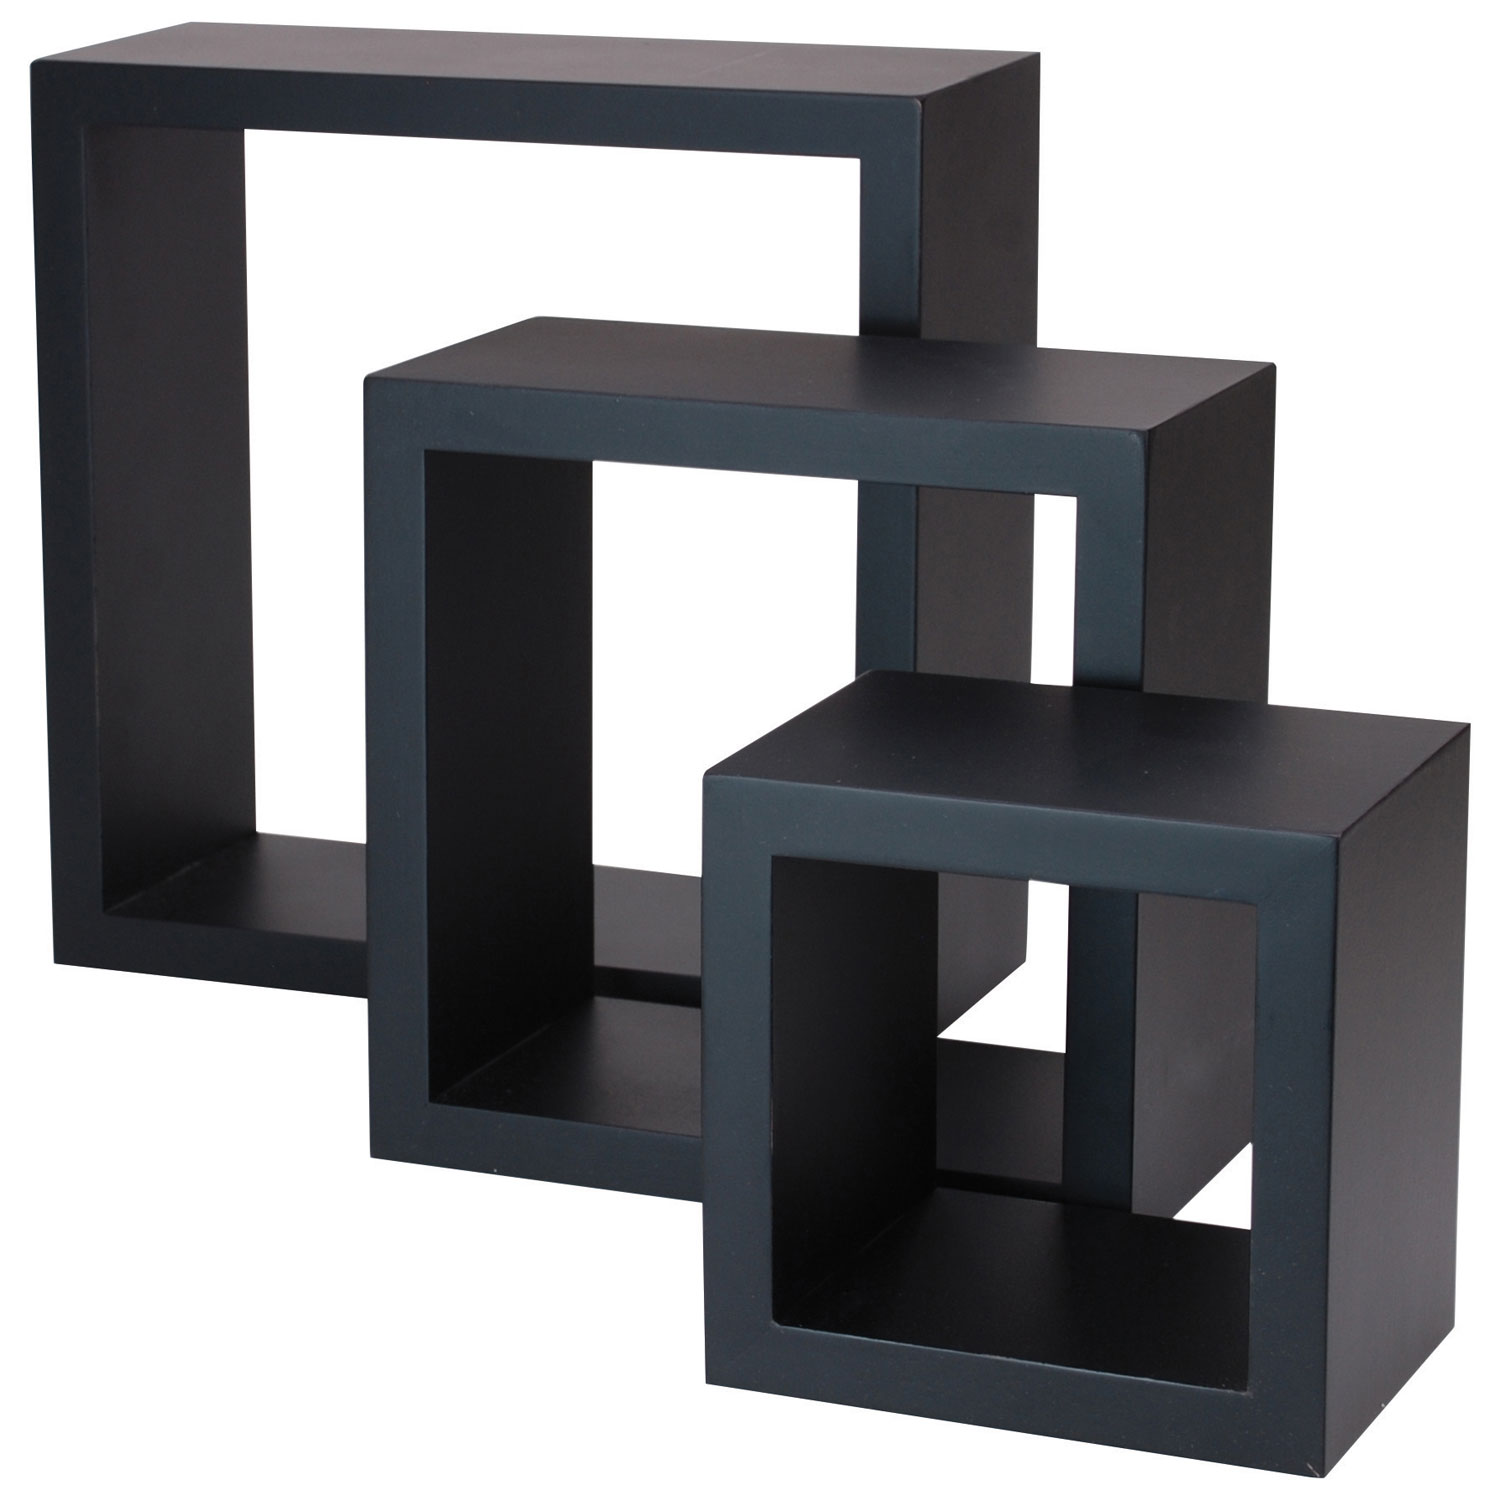 Cubbi 3 piece wall shelf black bookcases shelving best buy cubbi 3 piece wall shelf black bookcases shelving best buy canada amipublicfo Gallery